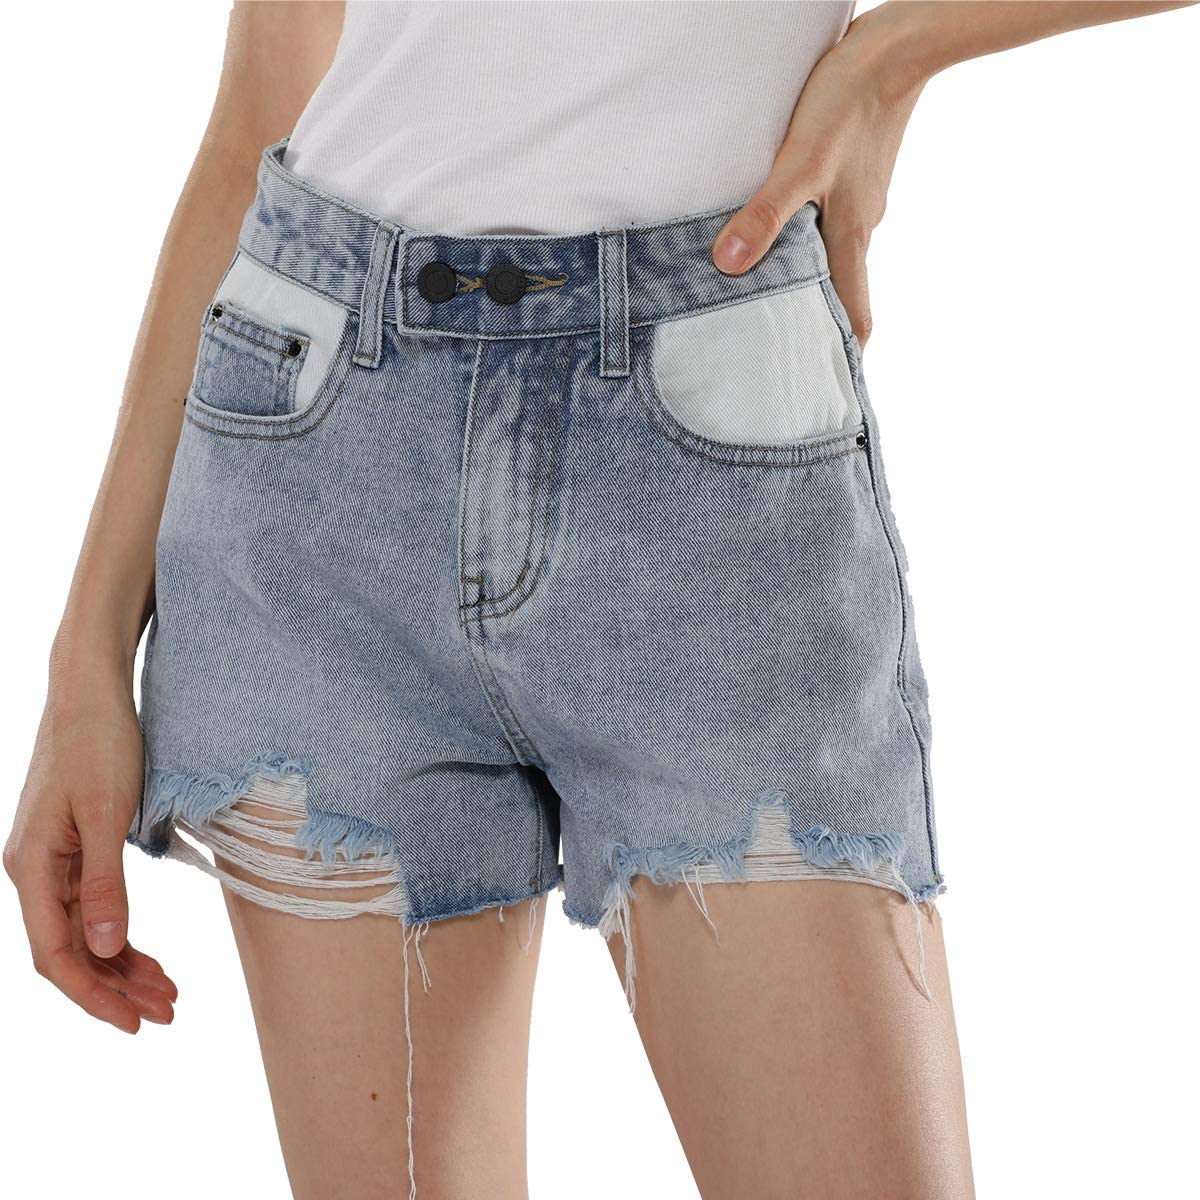 EYESHOCK Denim Shorts for Women Ripped Frayed Mid Rise Jeans Shorts Buttons Closure